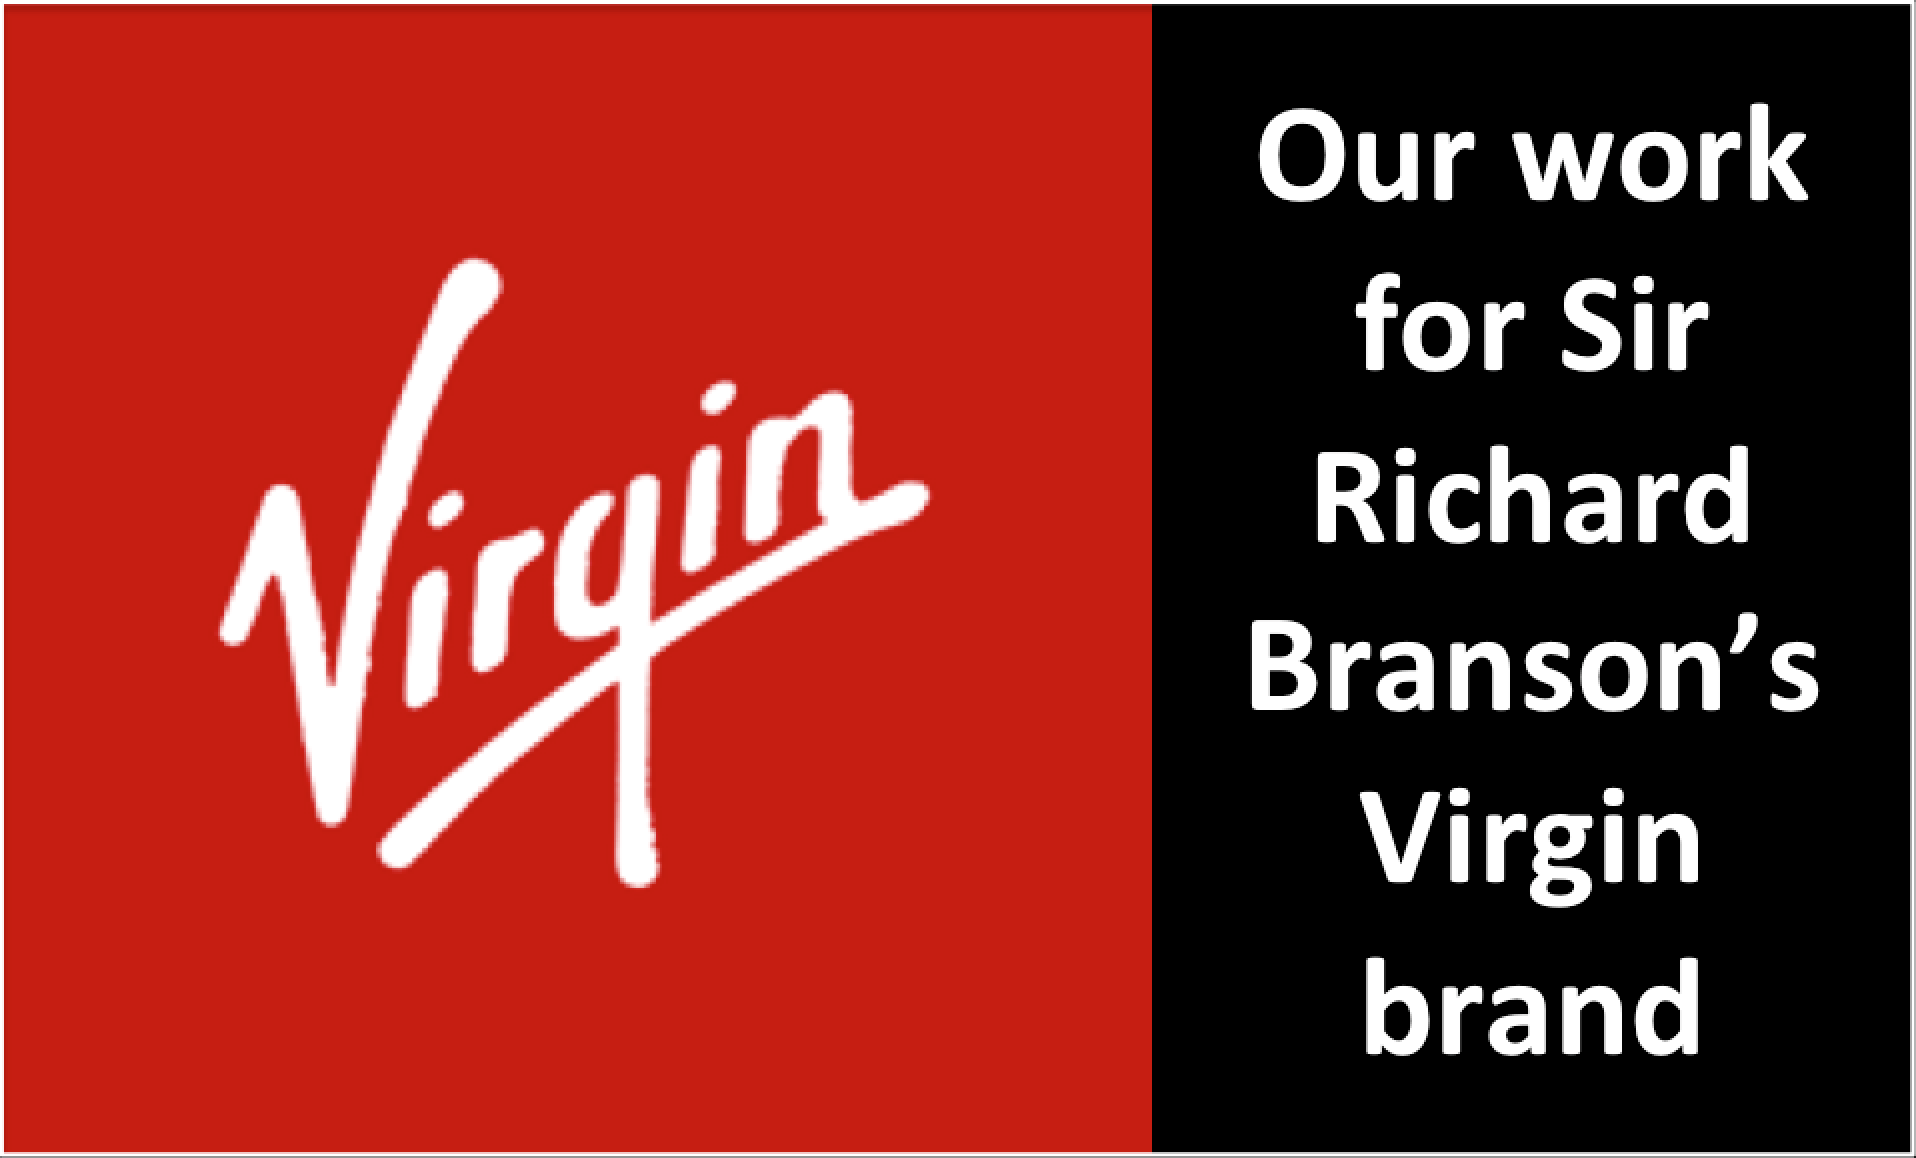 Peter Cook's work for Sir Richard Branson's Virgin Brand